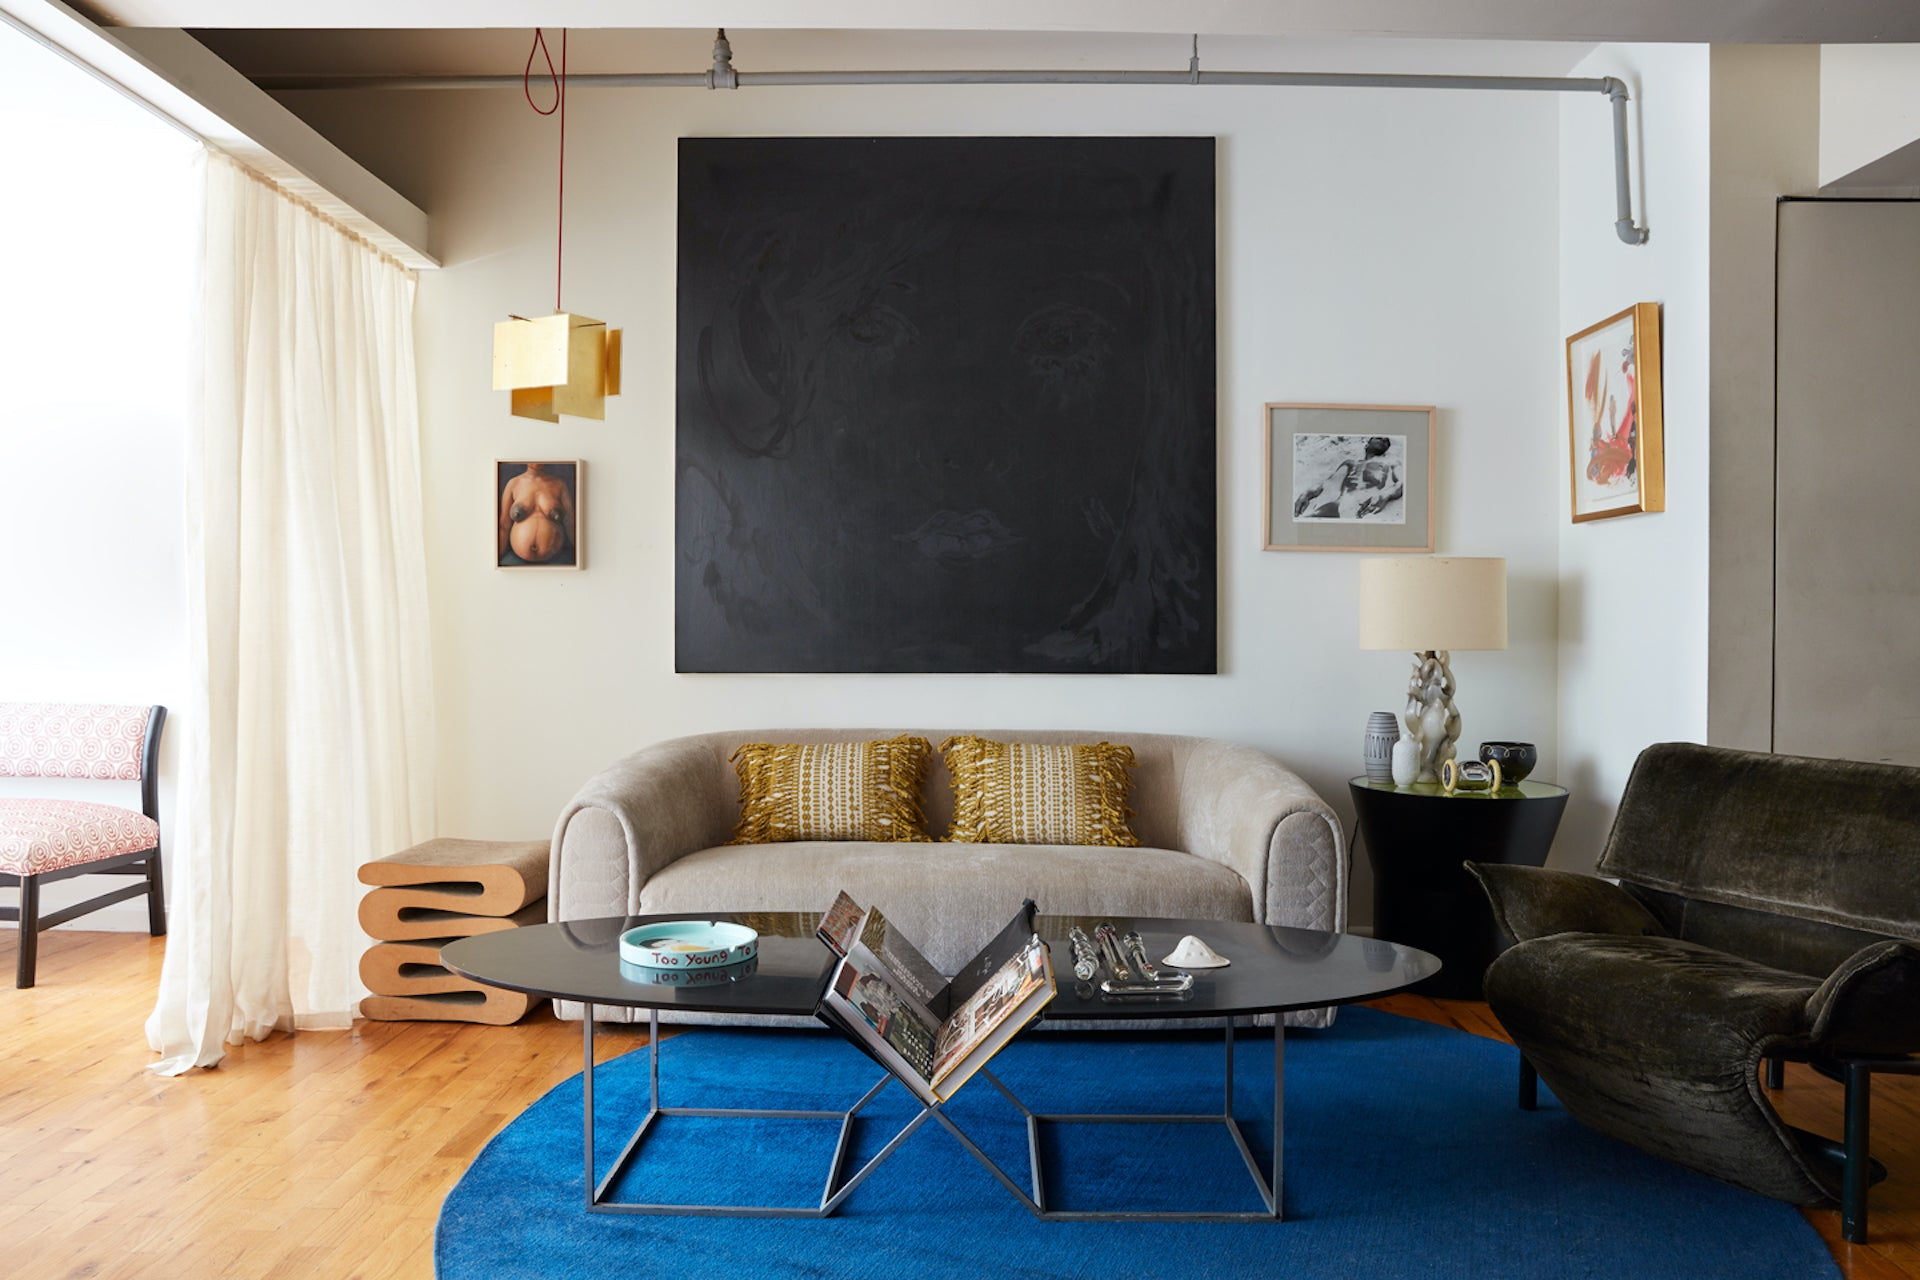 In Lewis's own home, the living space is partitioned by a West Elm sofa, set beneath a painting by Ricardo Gonzalez. The coffee table is custom made by Anthony Whitfield; armchair by Vico Magistretti for Cassina; Wiggle Stool by Frank Gehry; 24 Karat Blau pendant light by Axel Schultes for Ingo Maurer. Photo © David A. Land